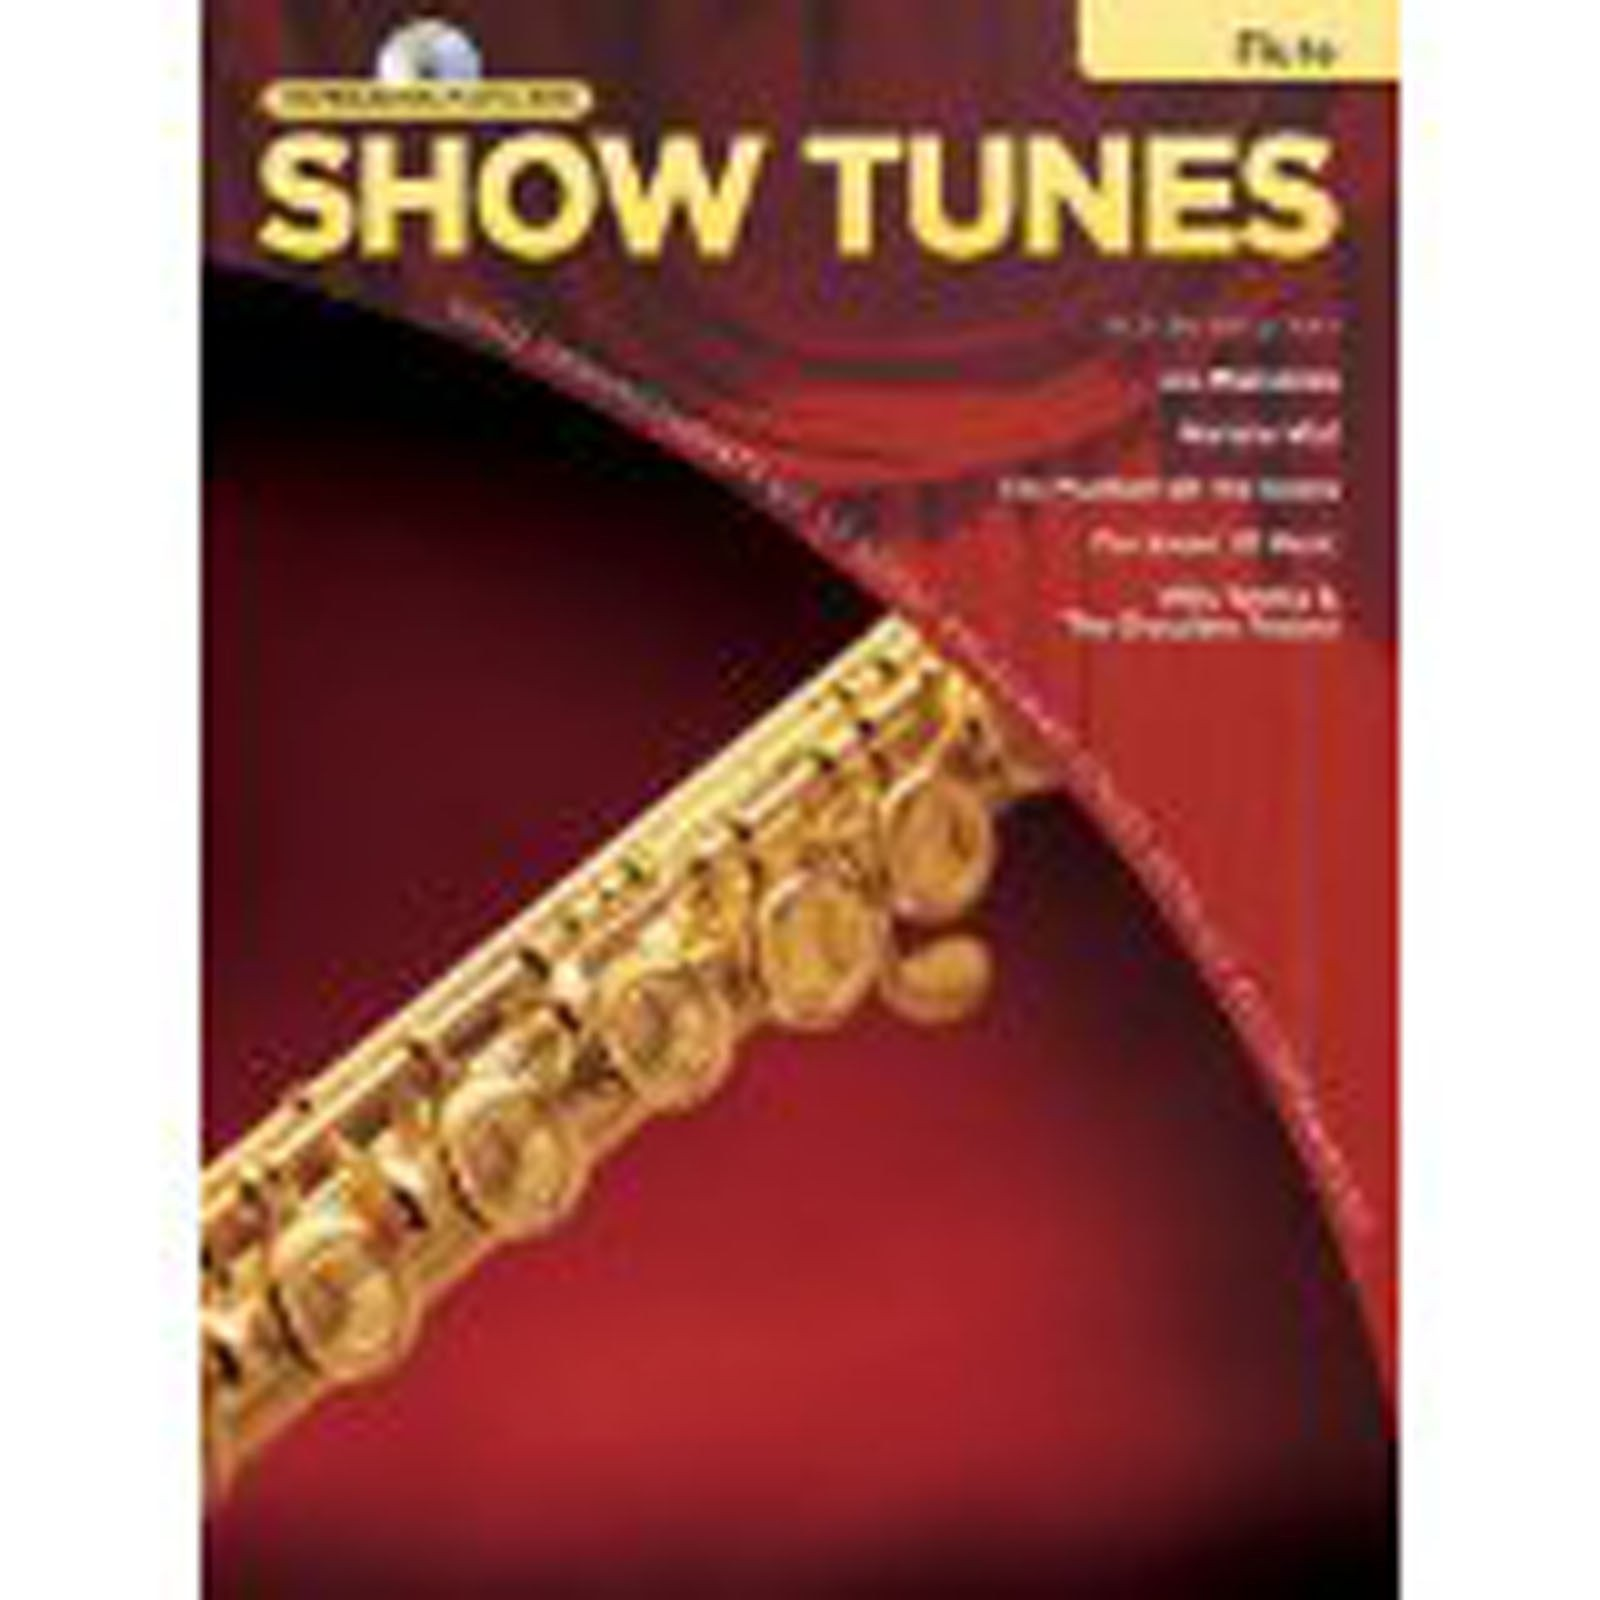 Flute Instrumental Playalong Show Tunes Book CD Easy B49